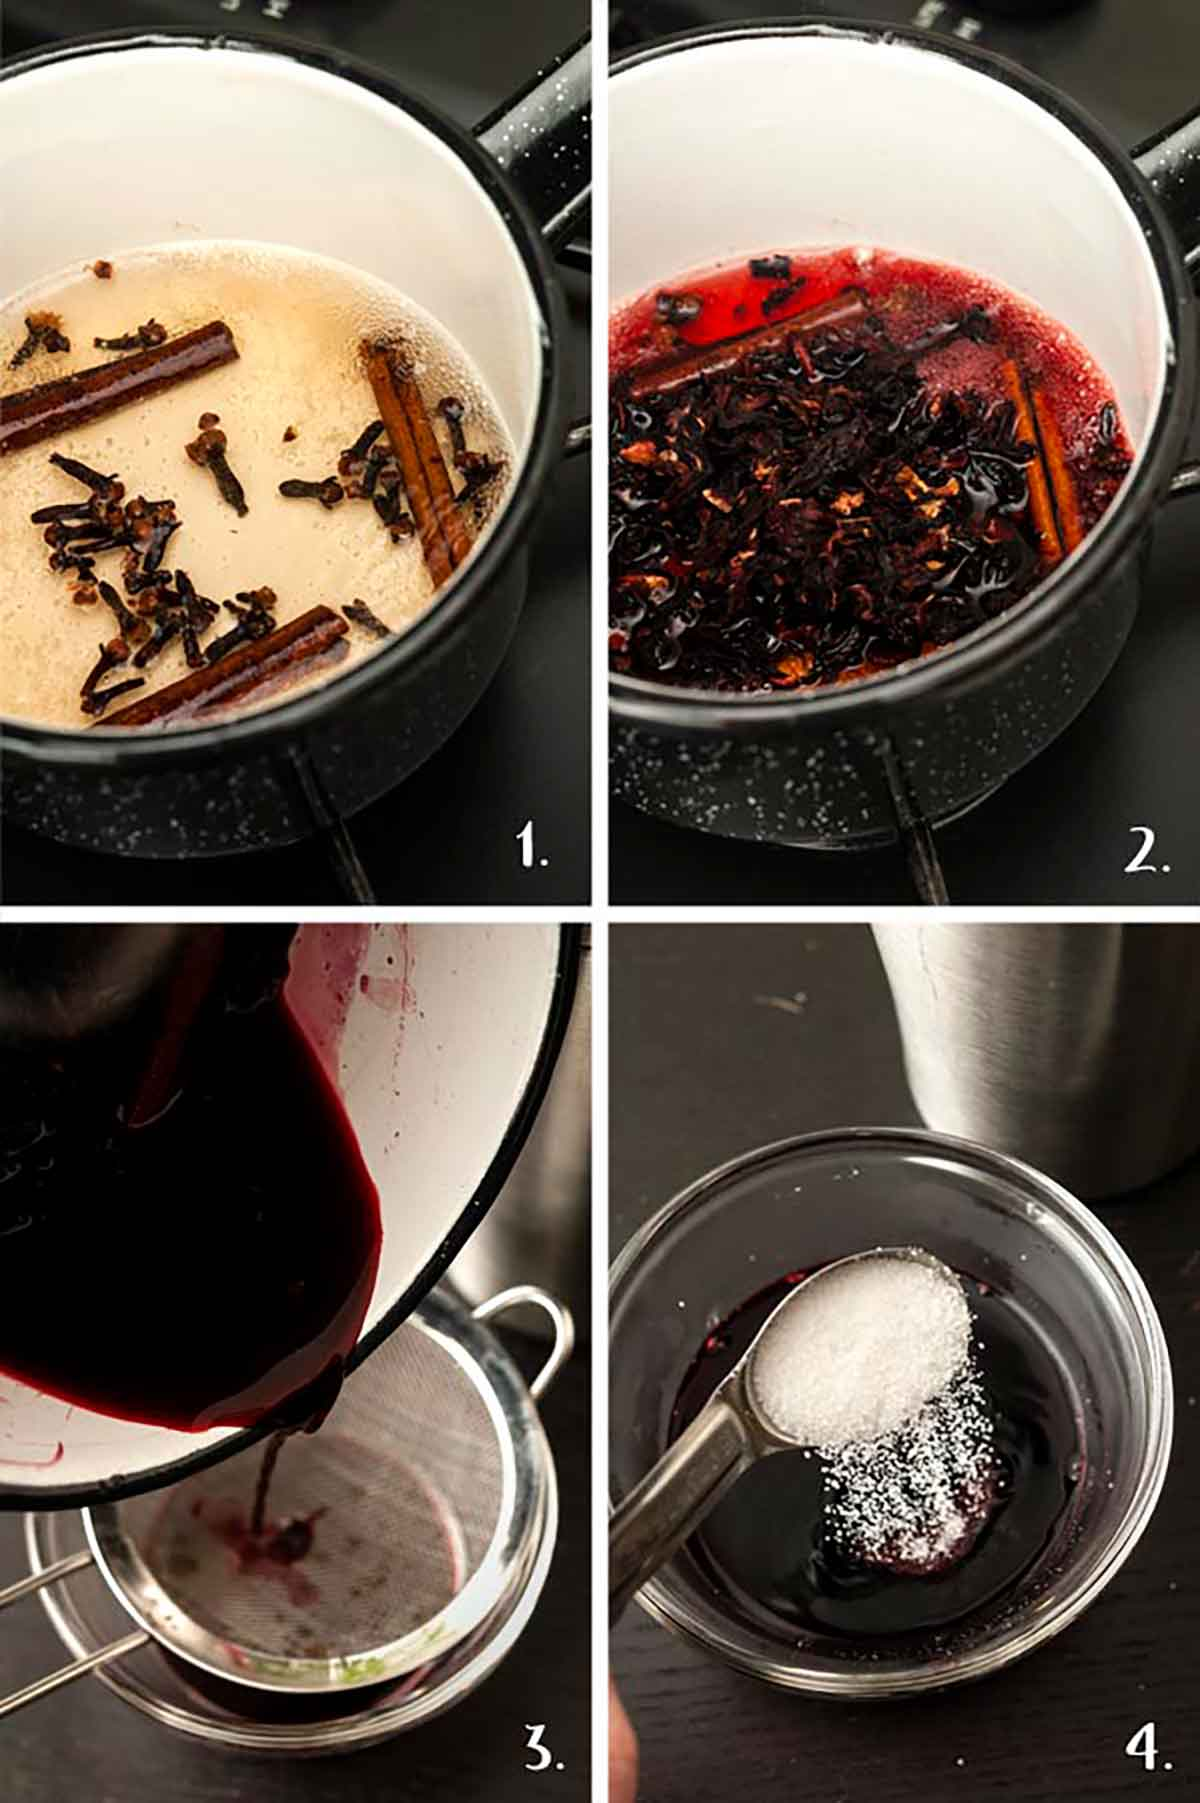 A collage of 4 numbered images showing how to make spiced hibiscus syrup.